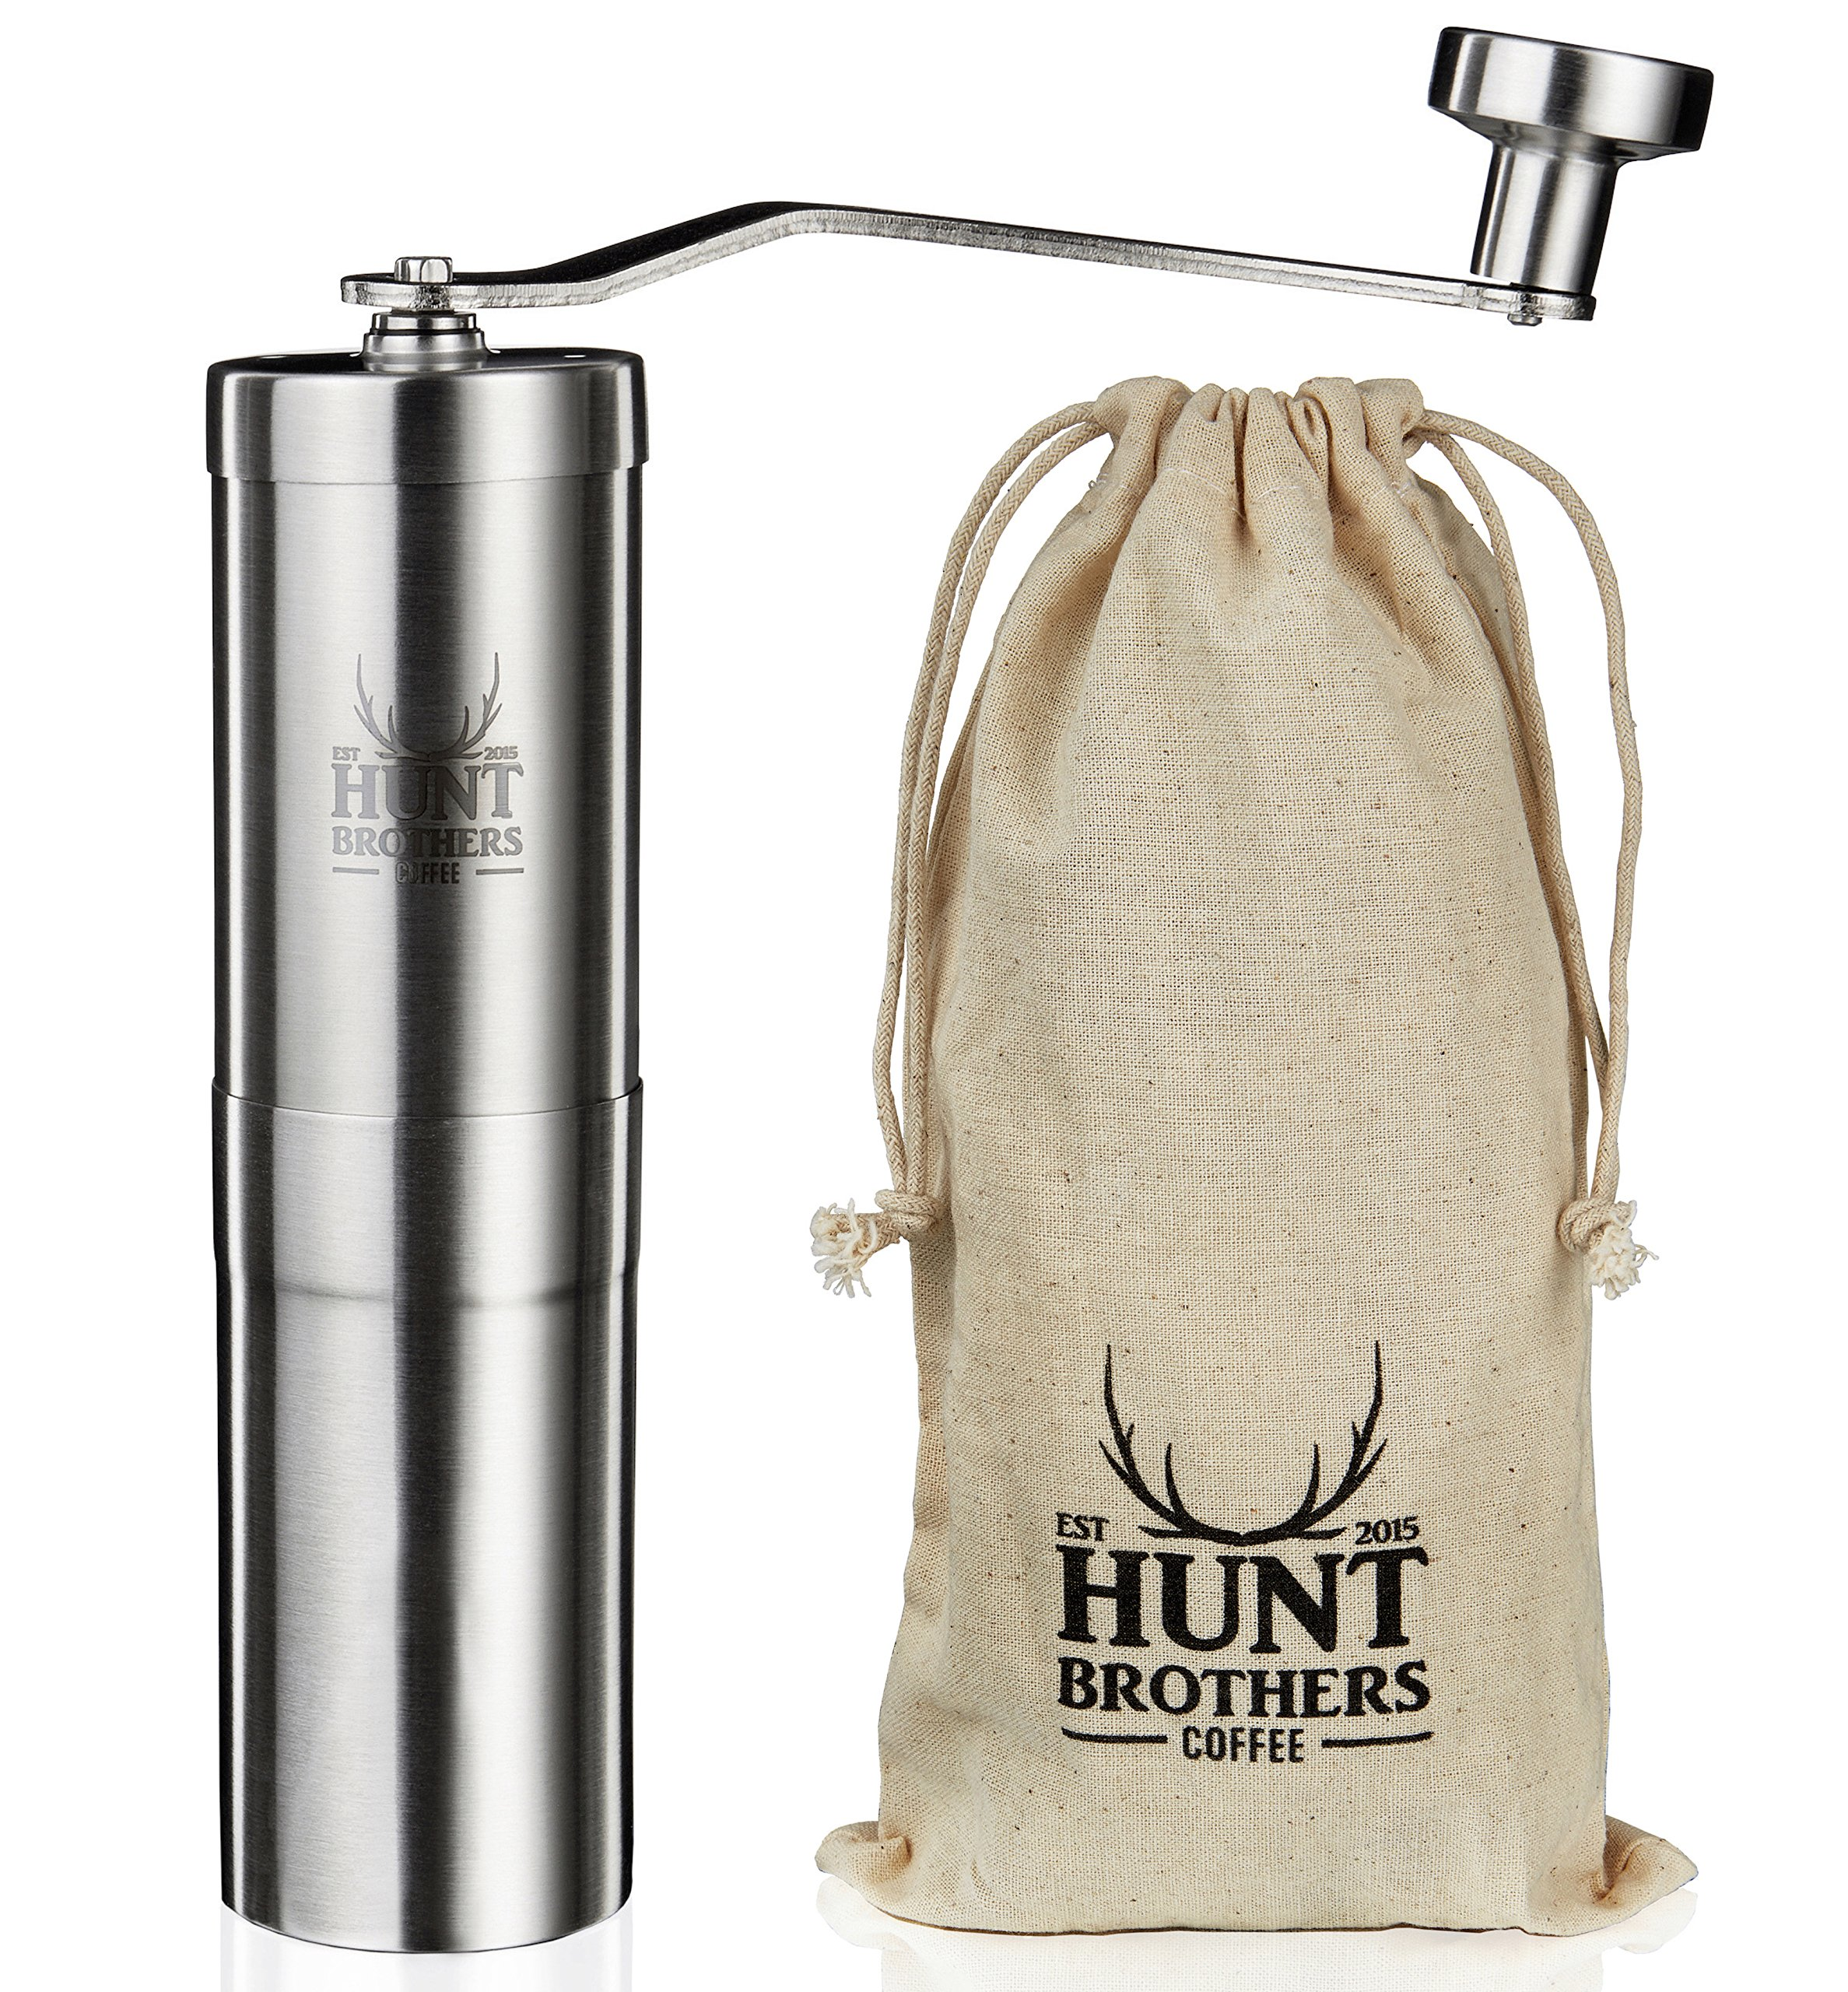 Hunt Brothers Coffee Grinder   Best Conical Burr for Precision Brewing   Upgraded Burr Piece   Top Rated Manual Coffee Mill   Aeropress Compatible, Perfect for Traveling